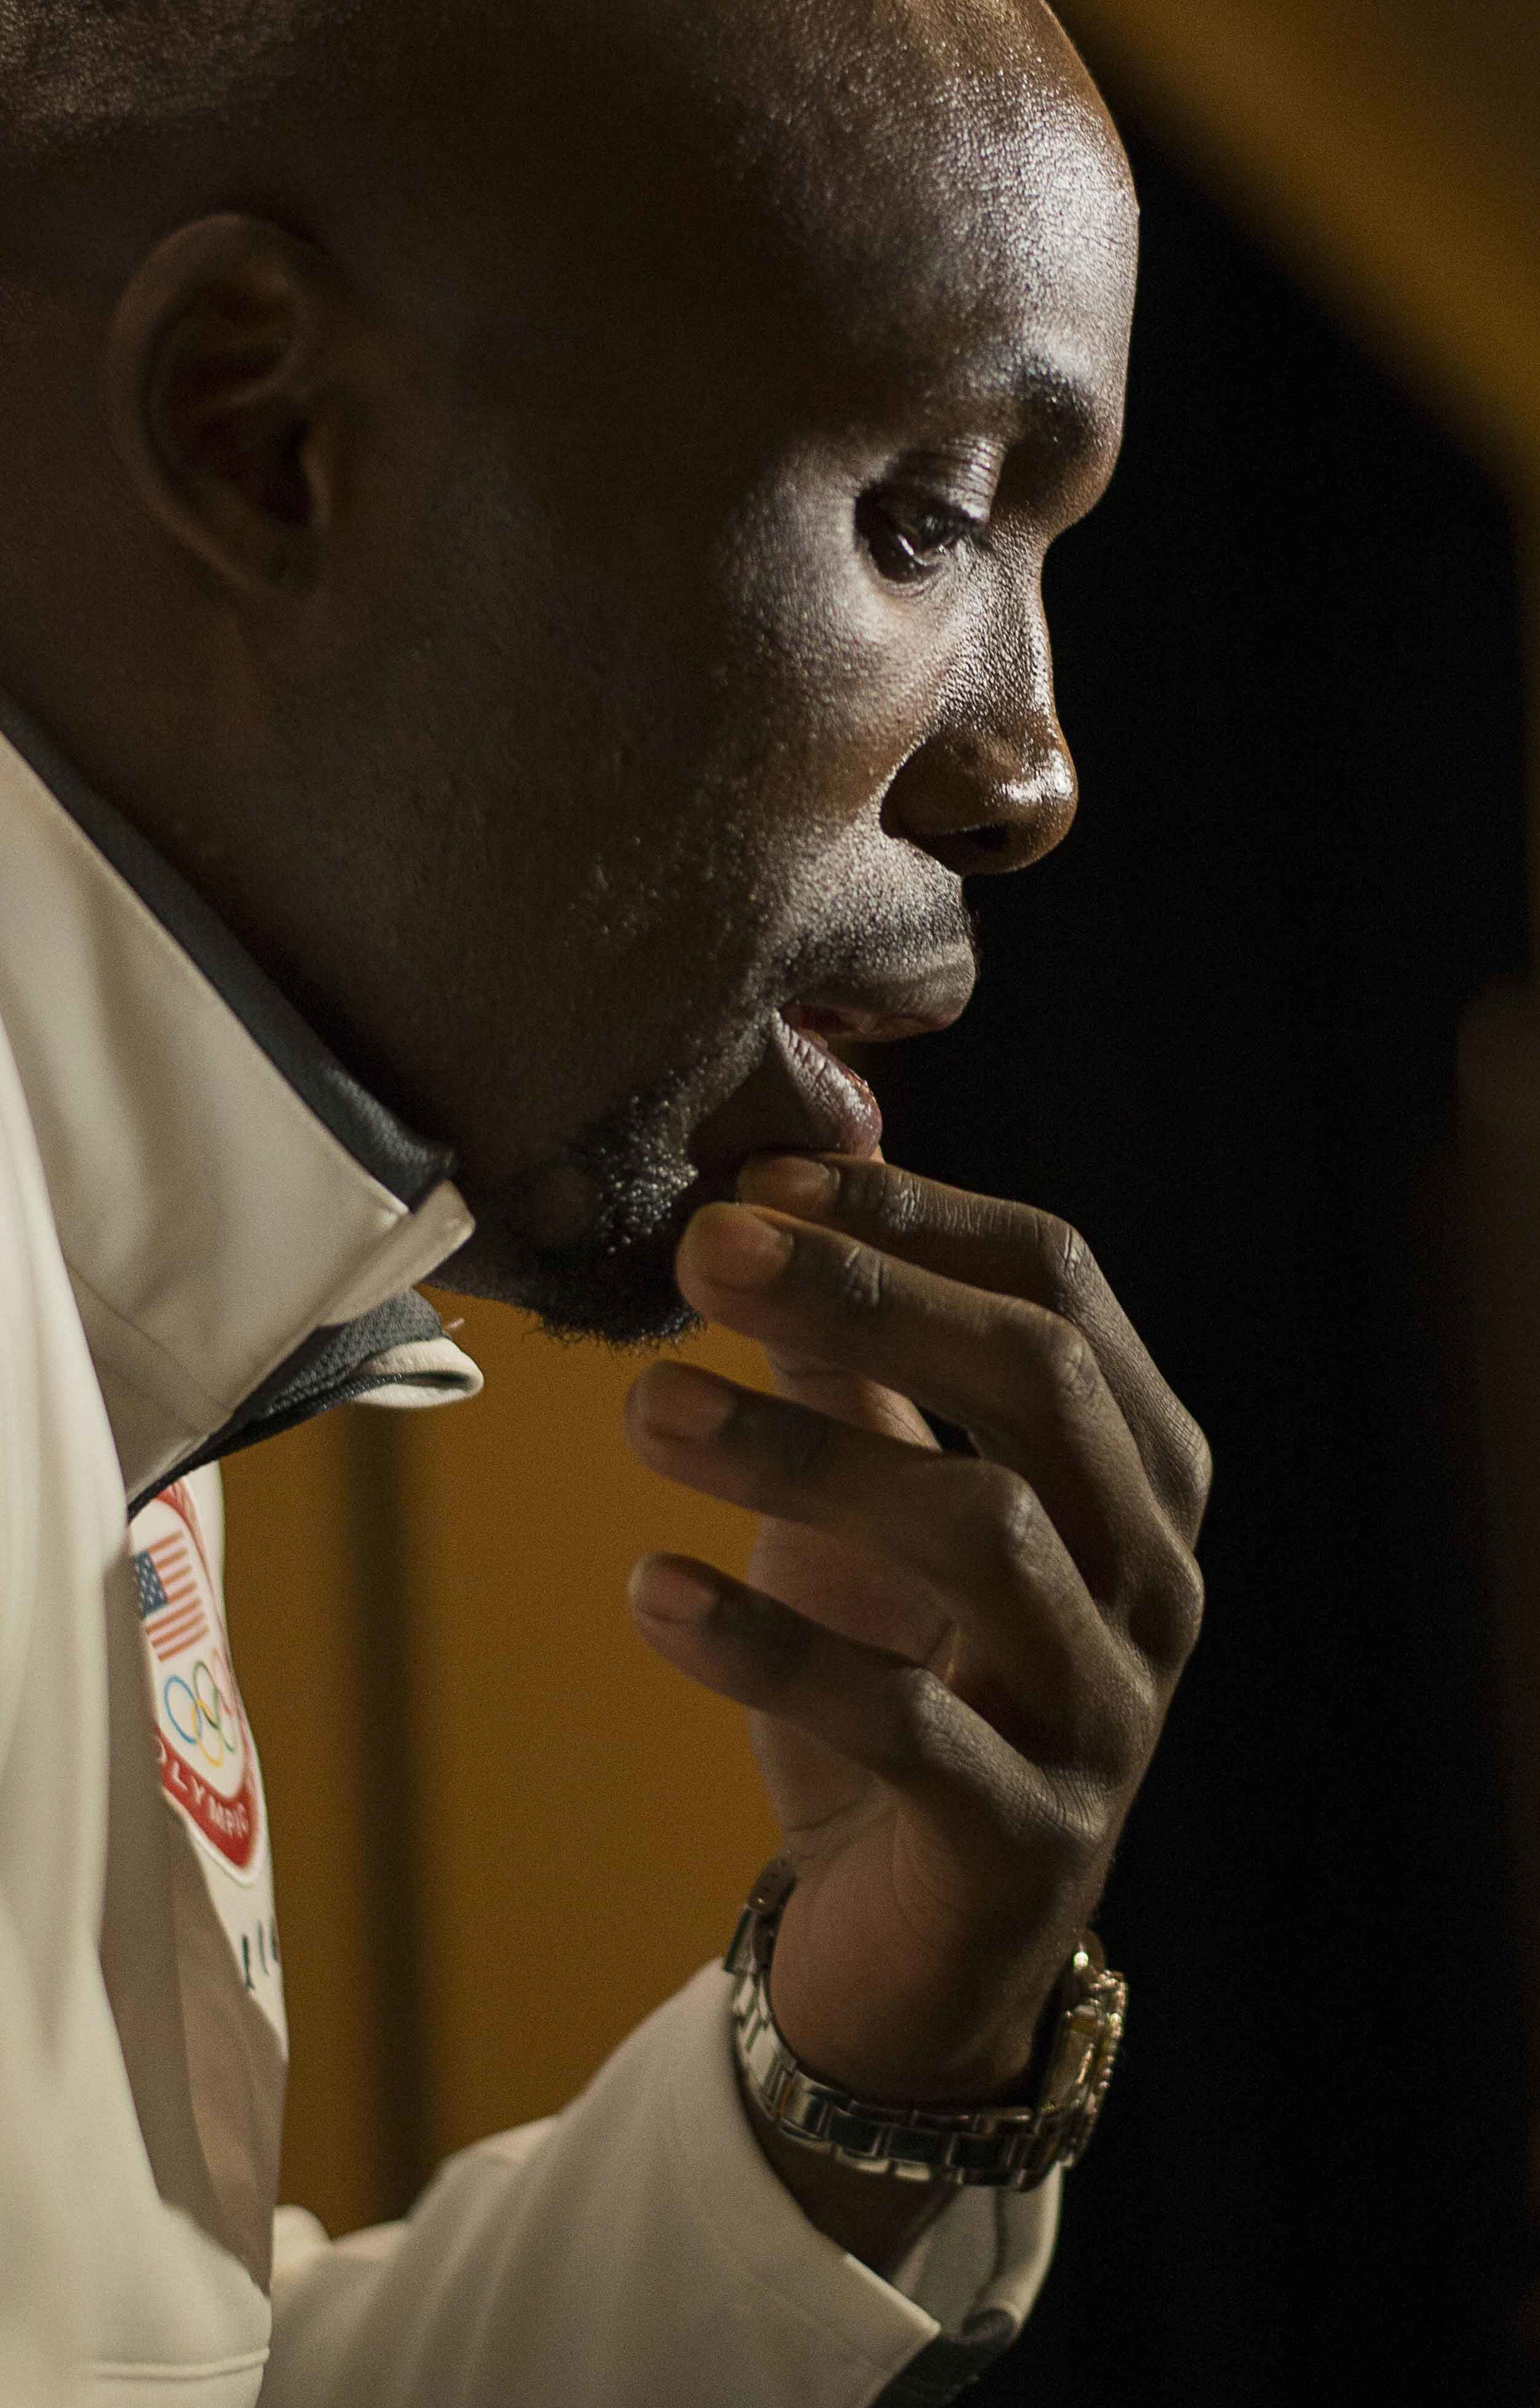 LaShawn Merritt, a track and field gold medalist for 400m in 2008, takes a moment before answering a question by the press at the Team USA Media Summit on March 8, 2016.